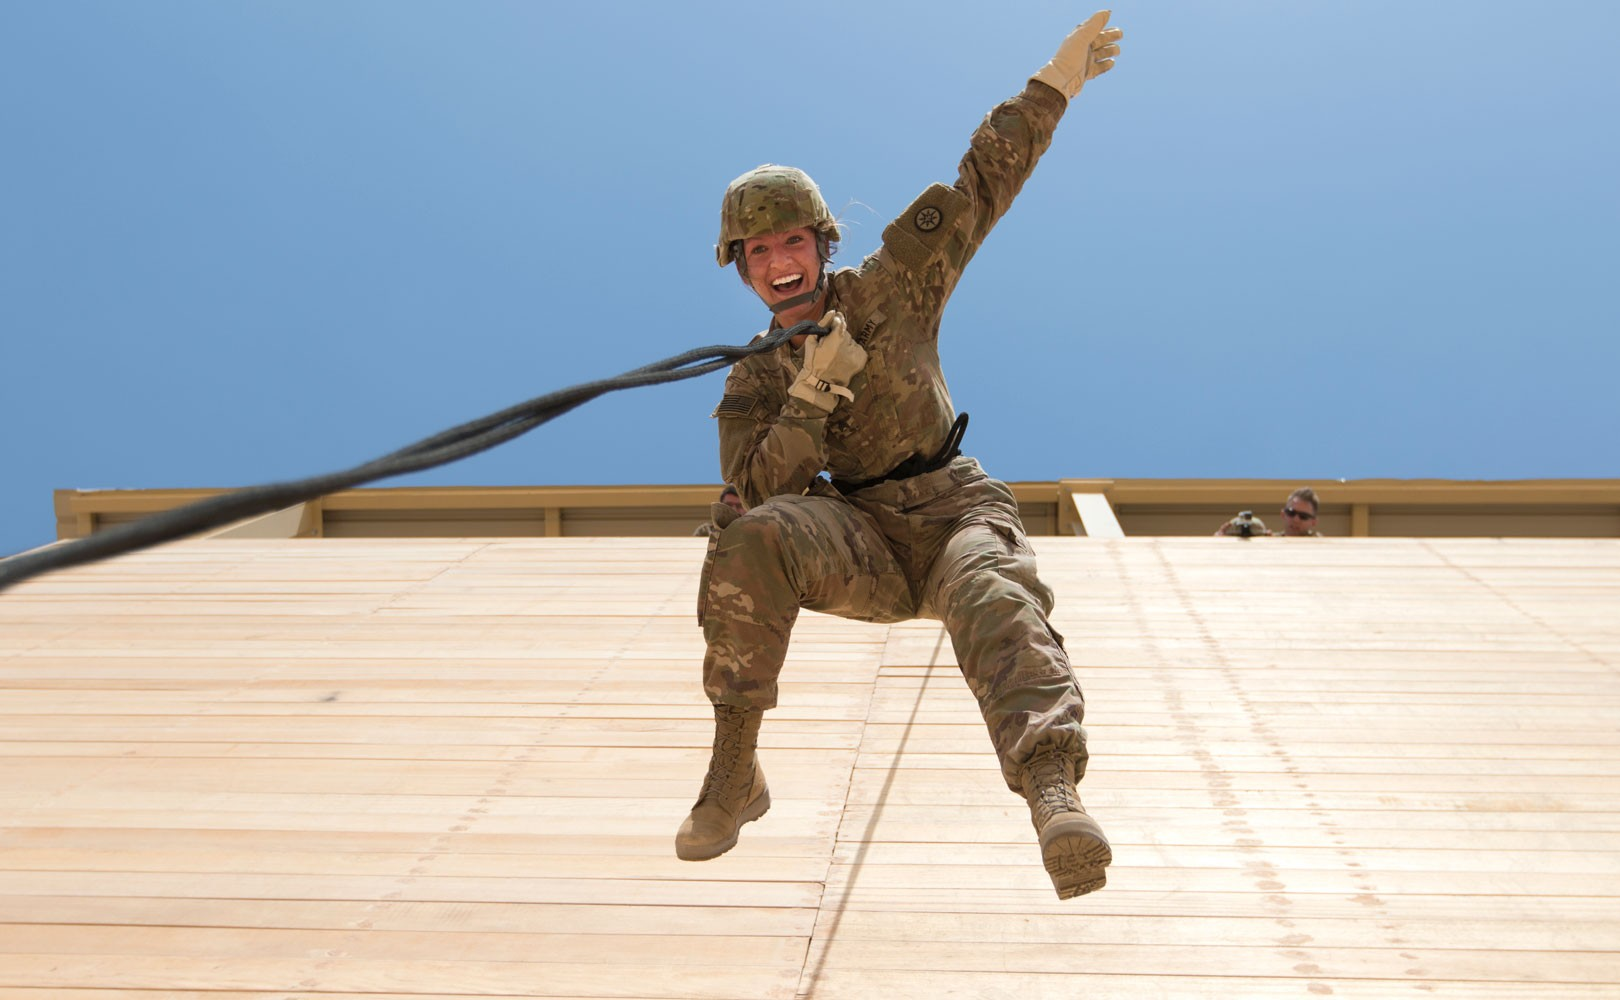 Tips for Military Jobs